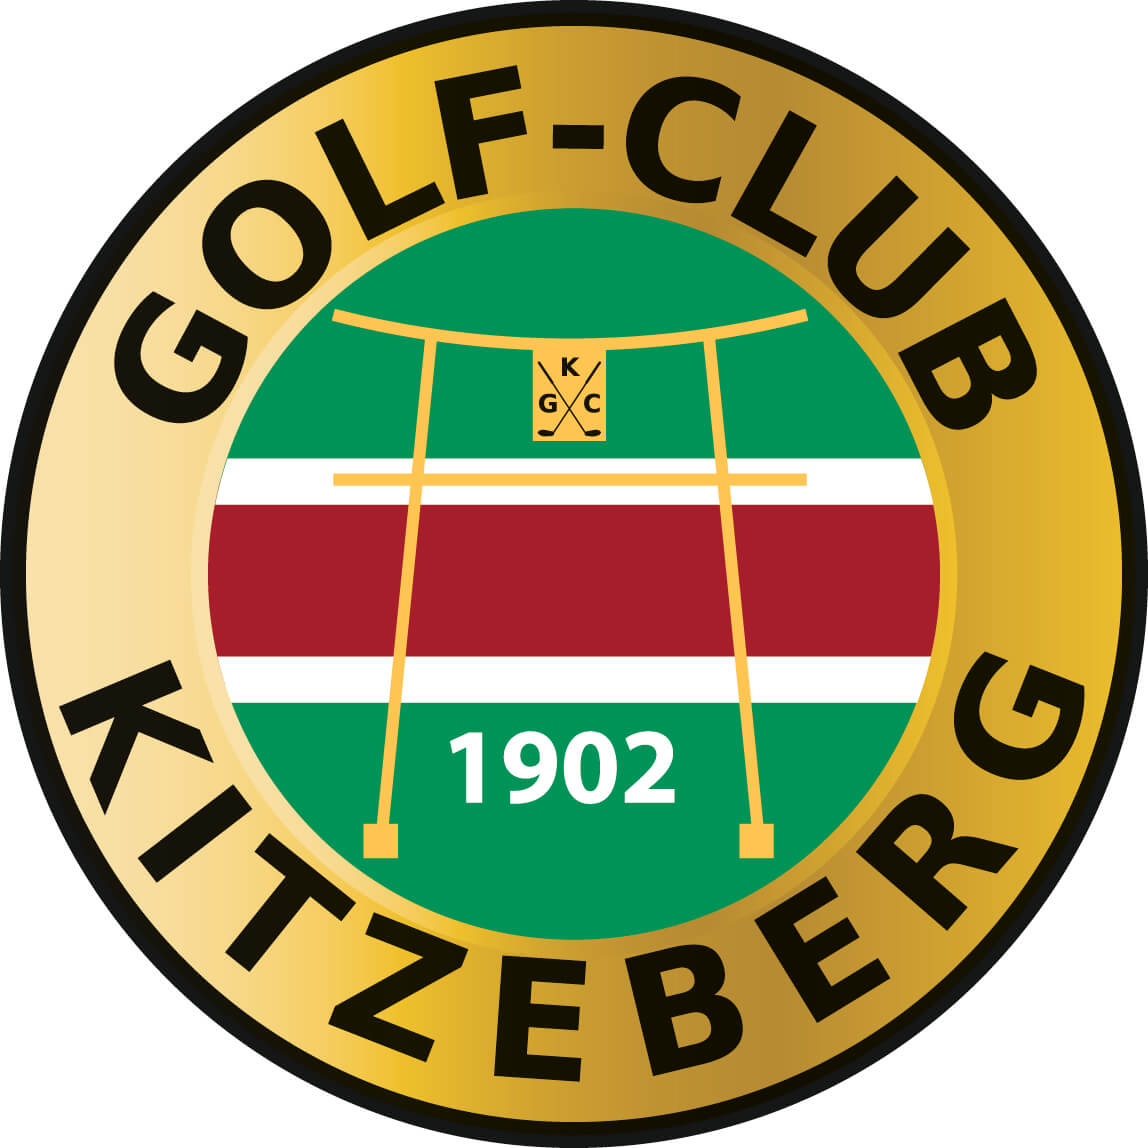 Golf-Club Kitzeberg Logo